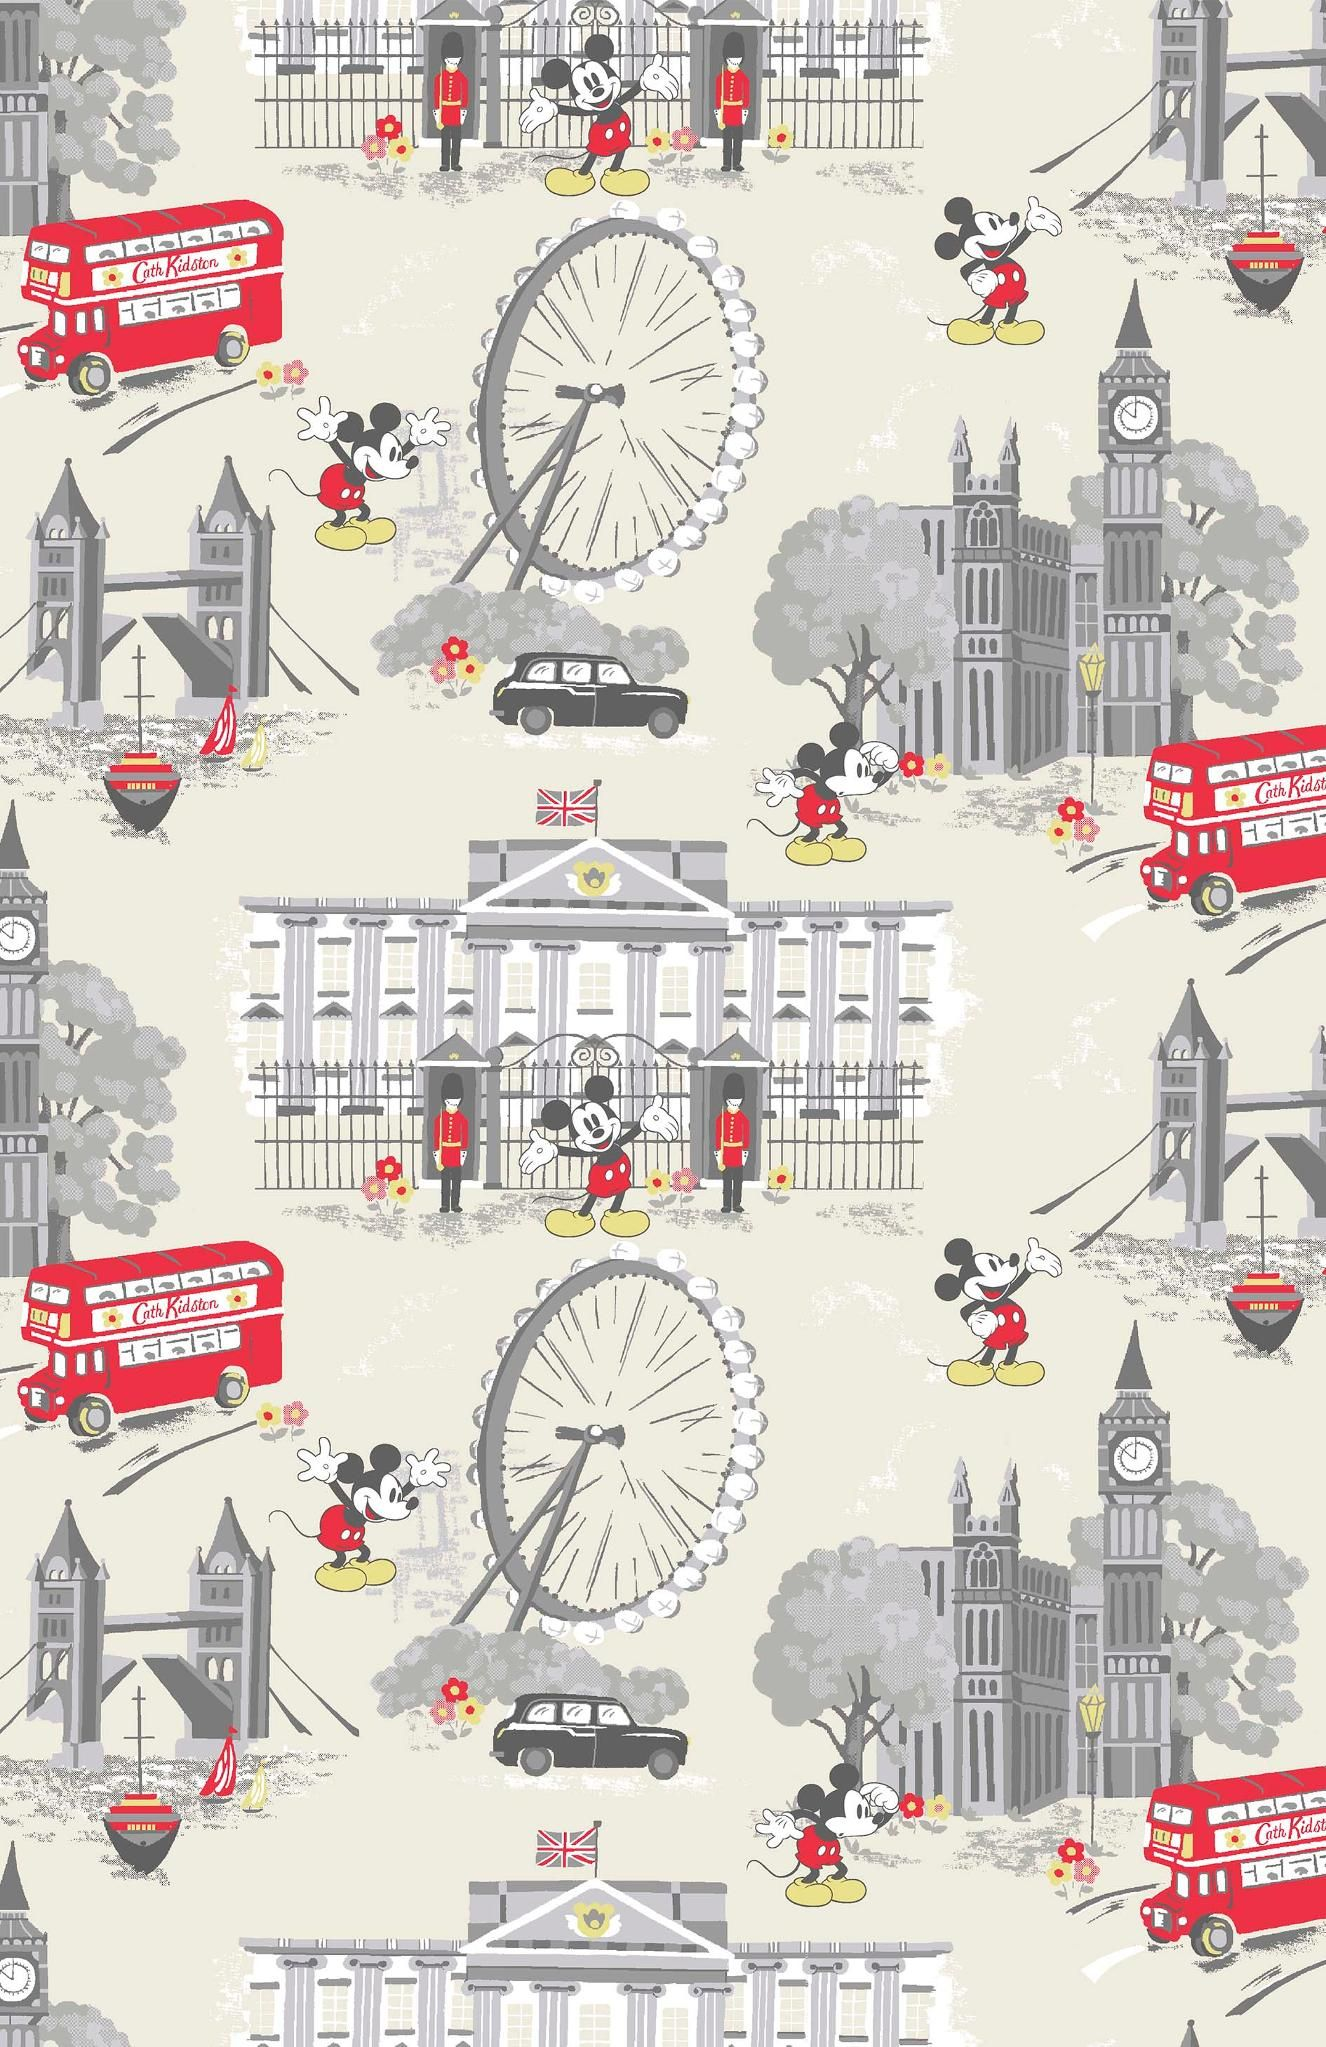 Mickey In London   Mickey pays a visit to our London hometown with a modern spin on vintage cartoons   Disney X Cath Kidston 2016  